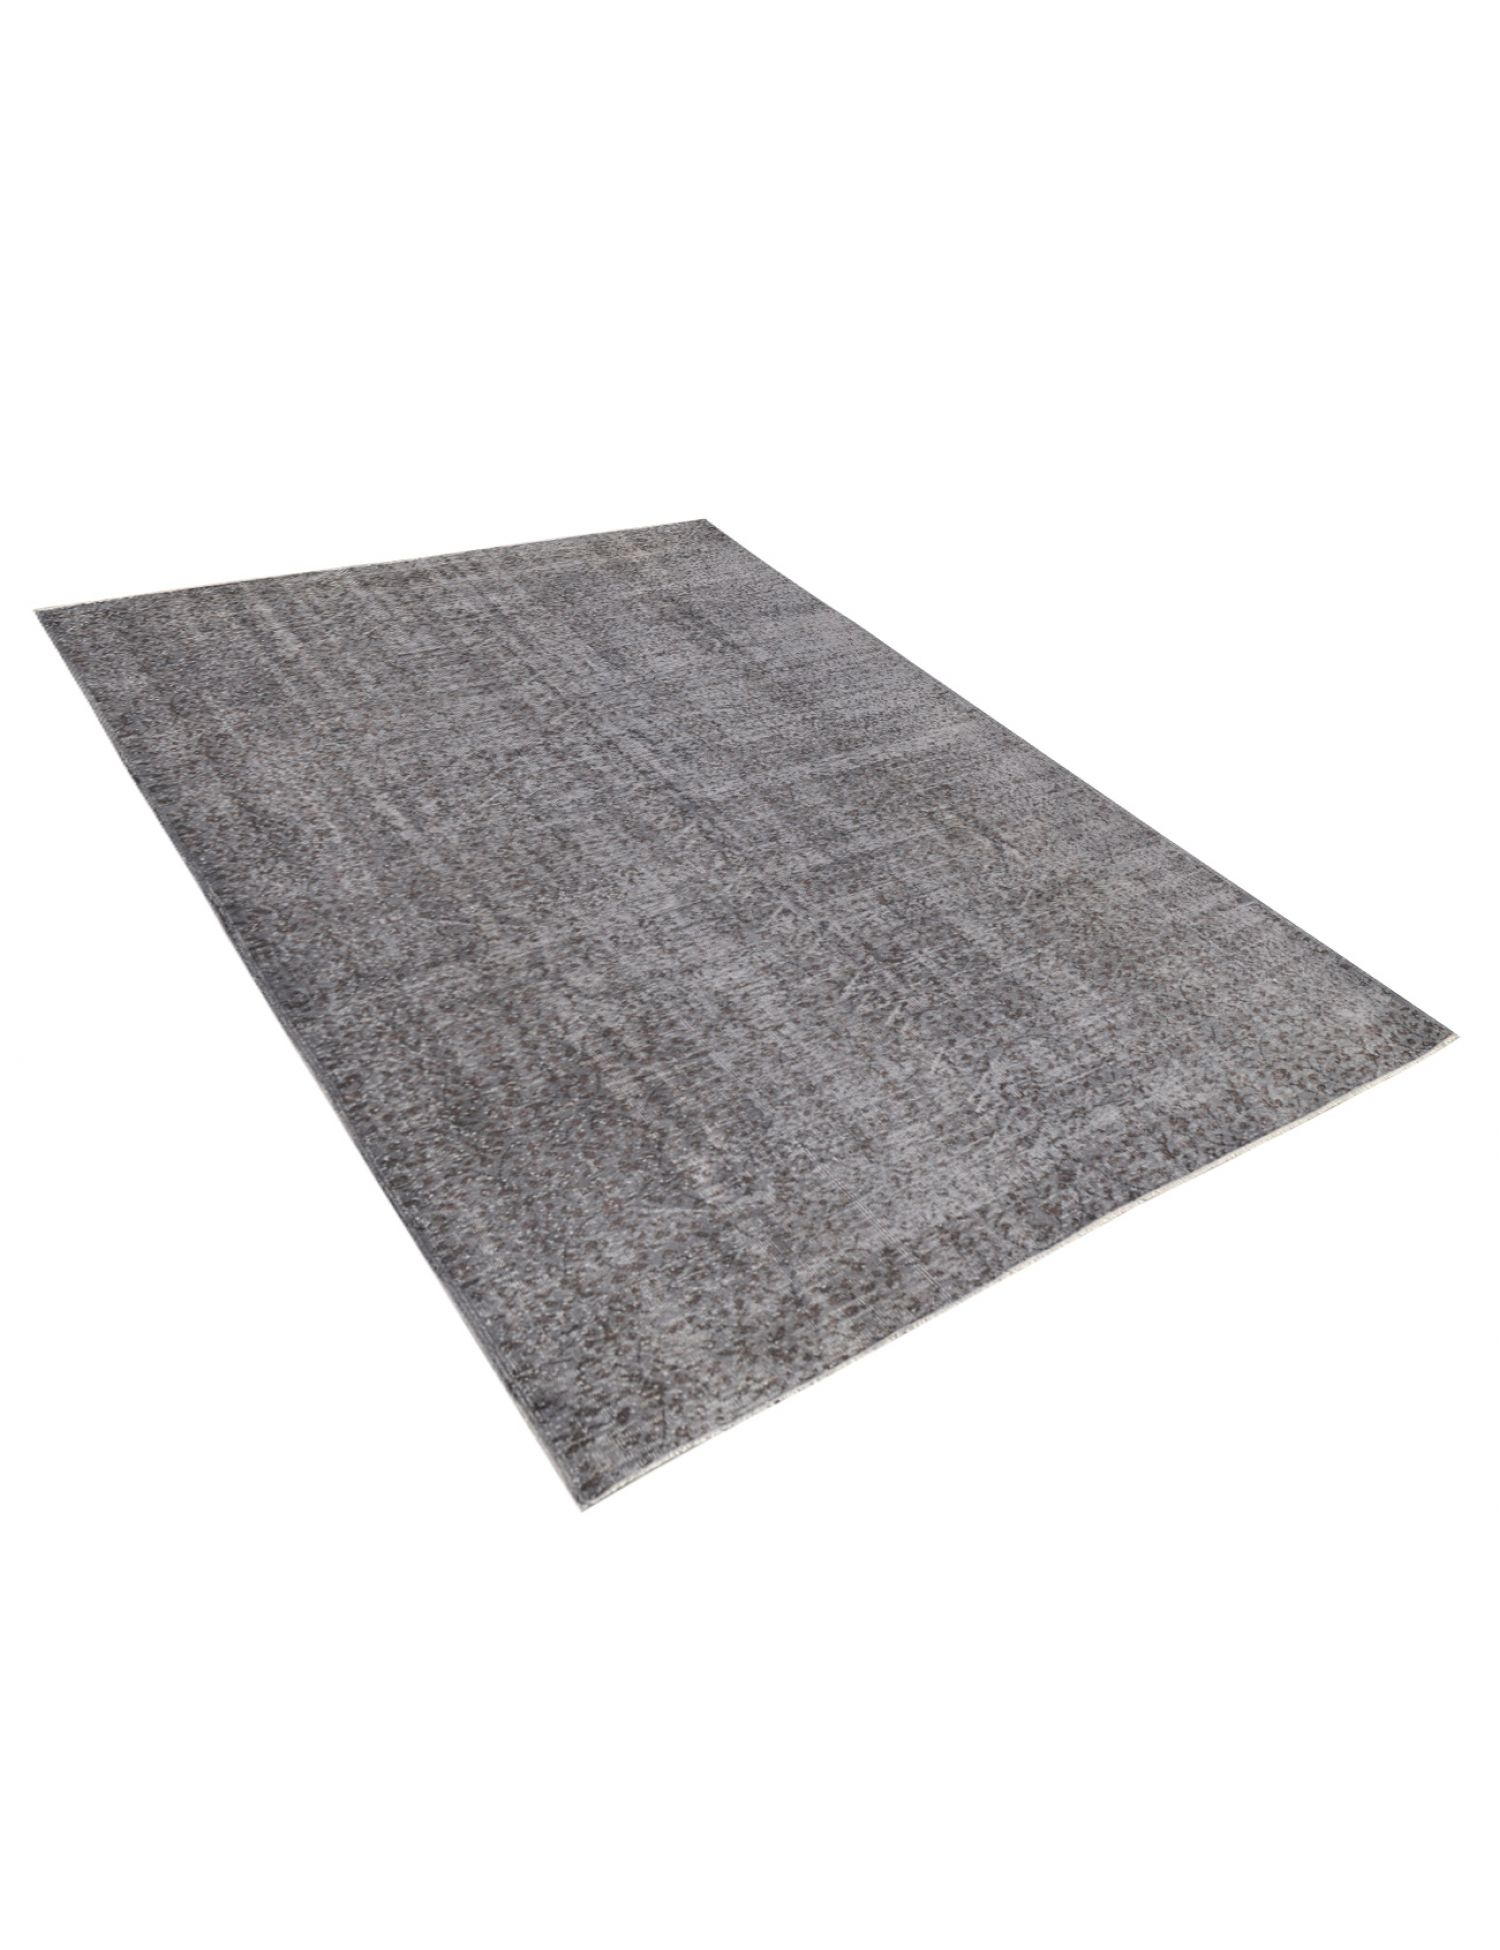 Vintage Carpet  grey <br/>309 x 211 cm